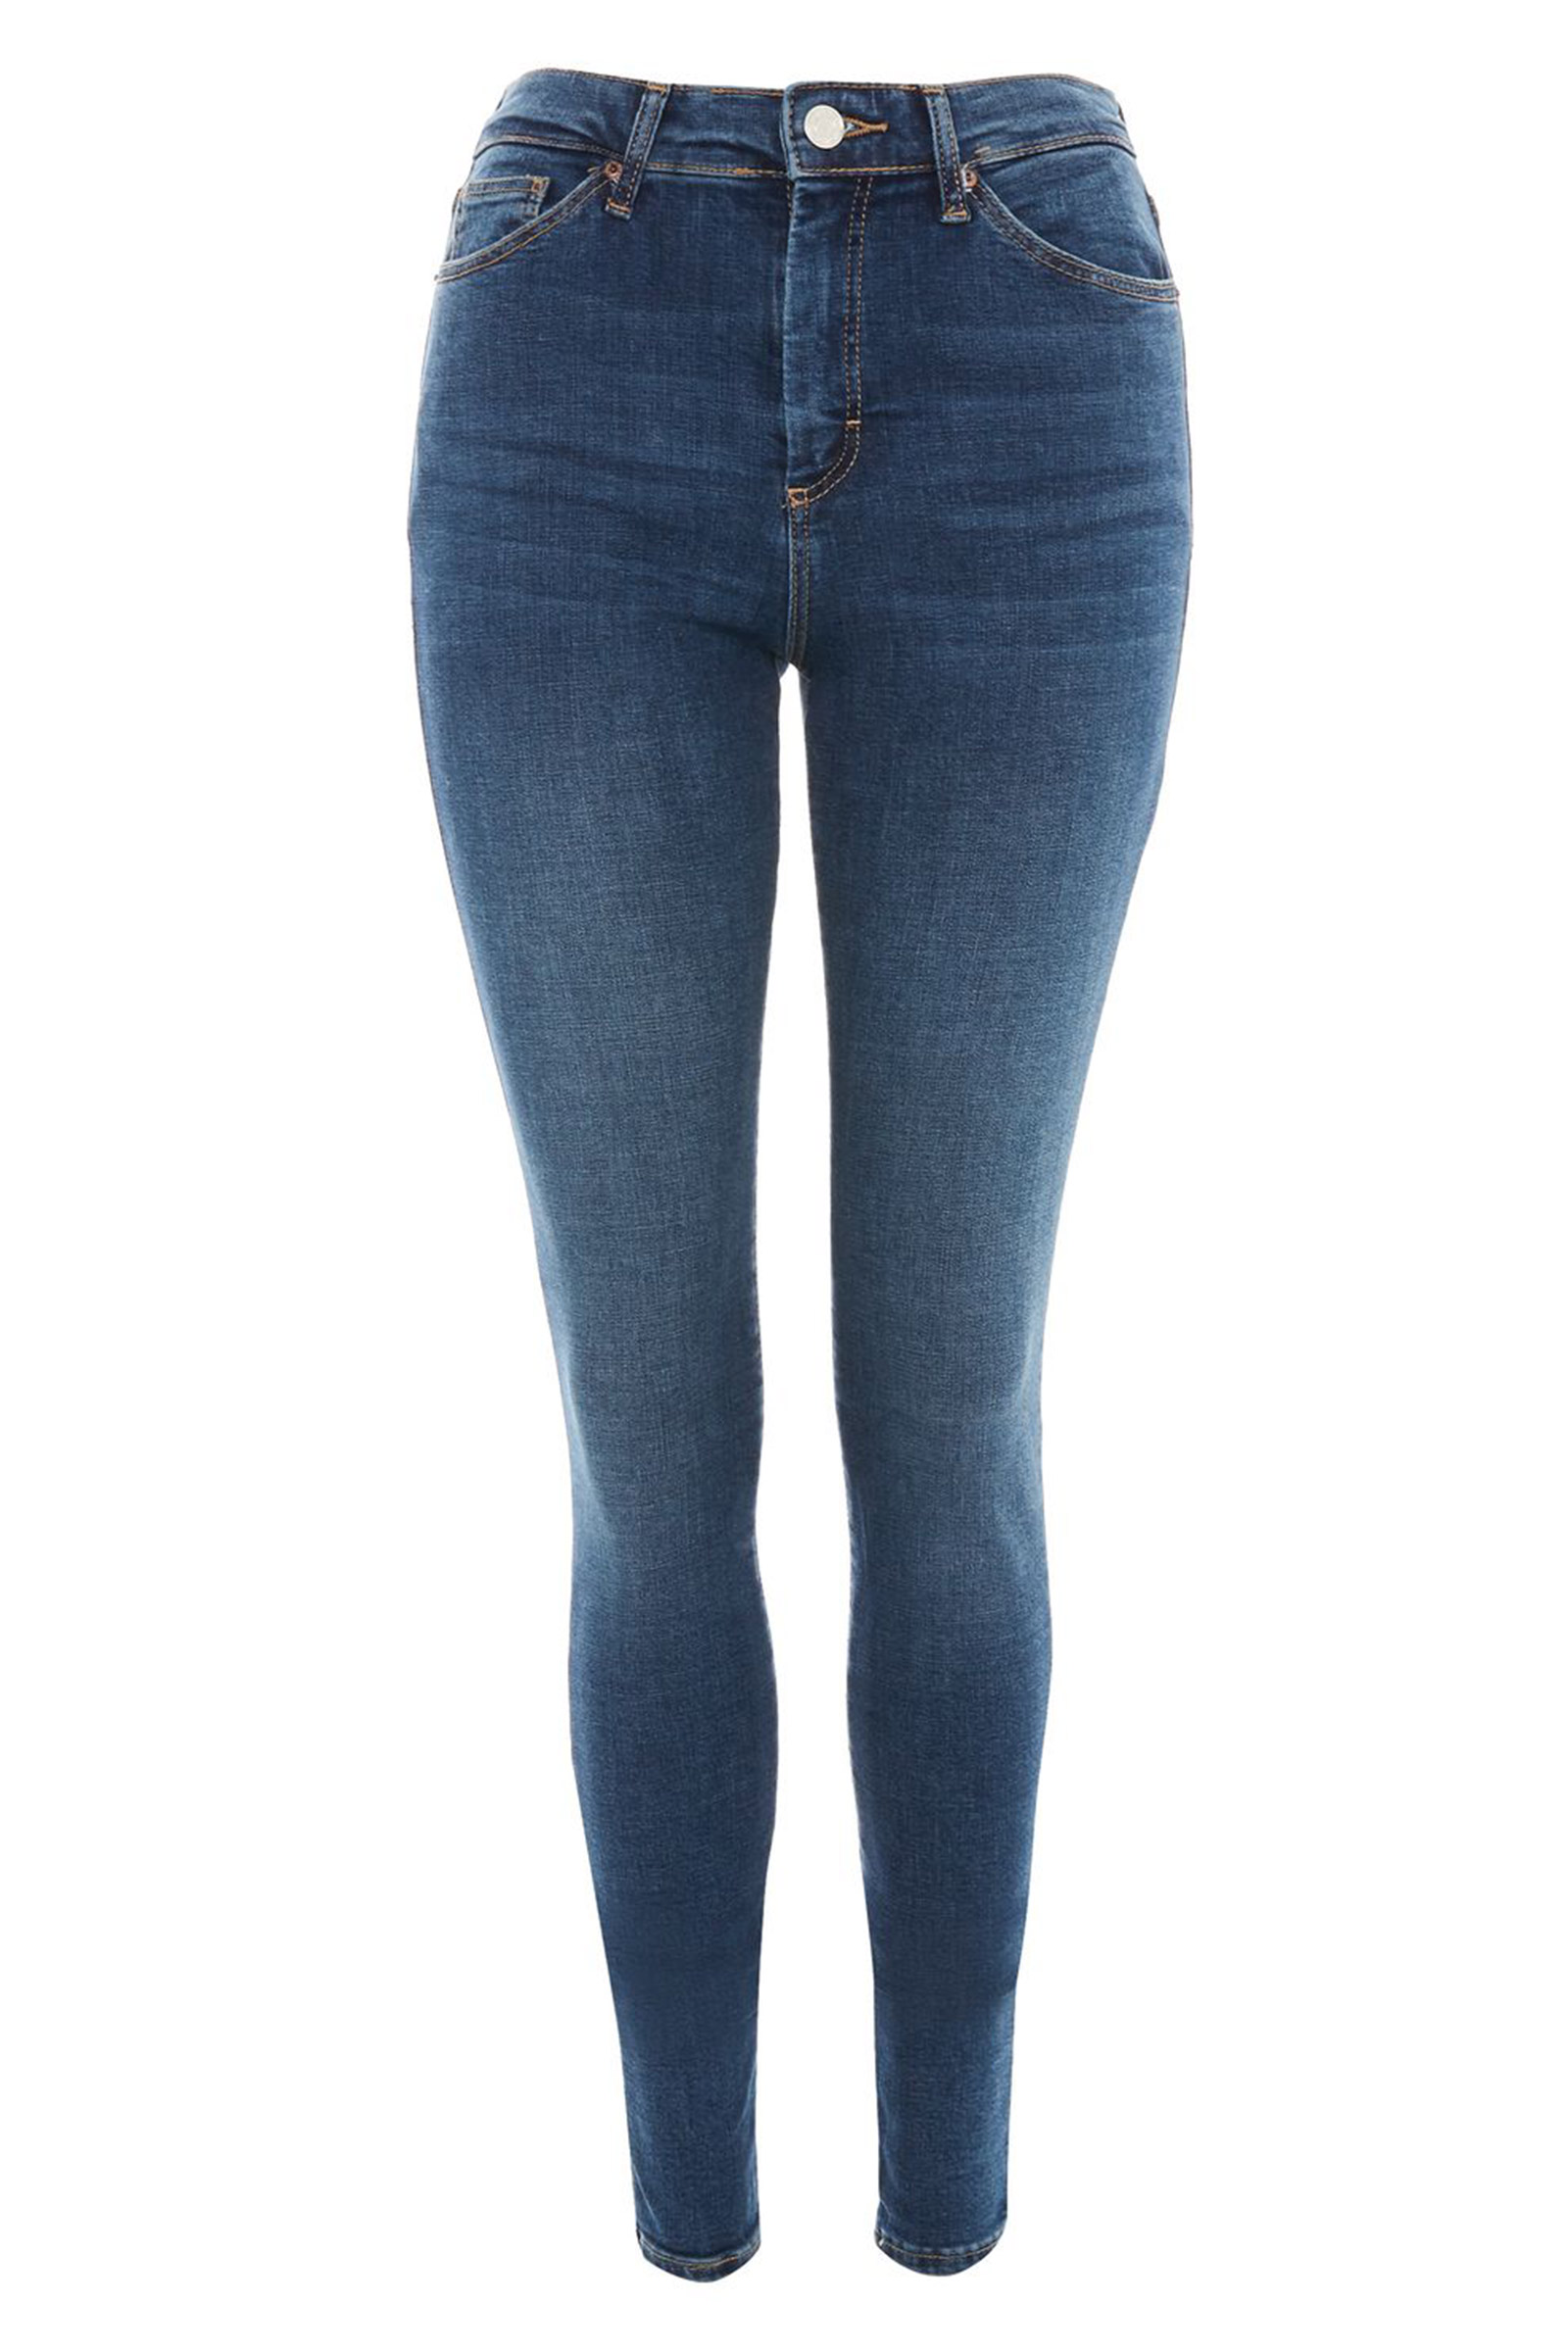 Click to Buy Topshop Mid Blue Jeans